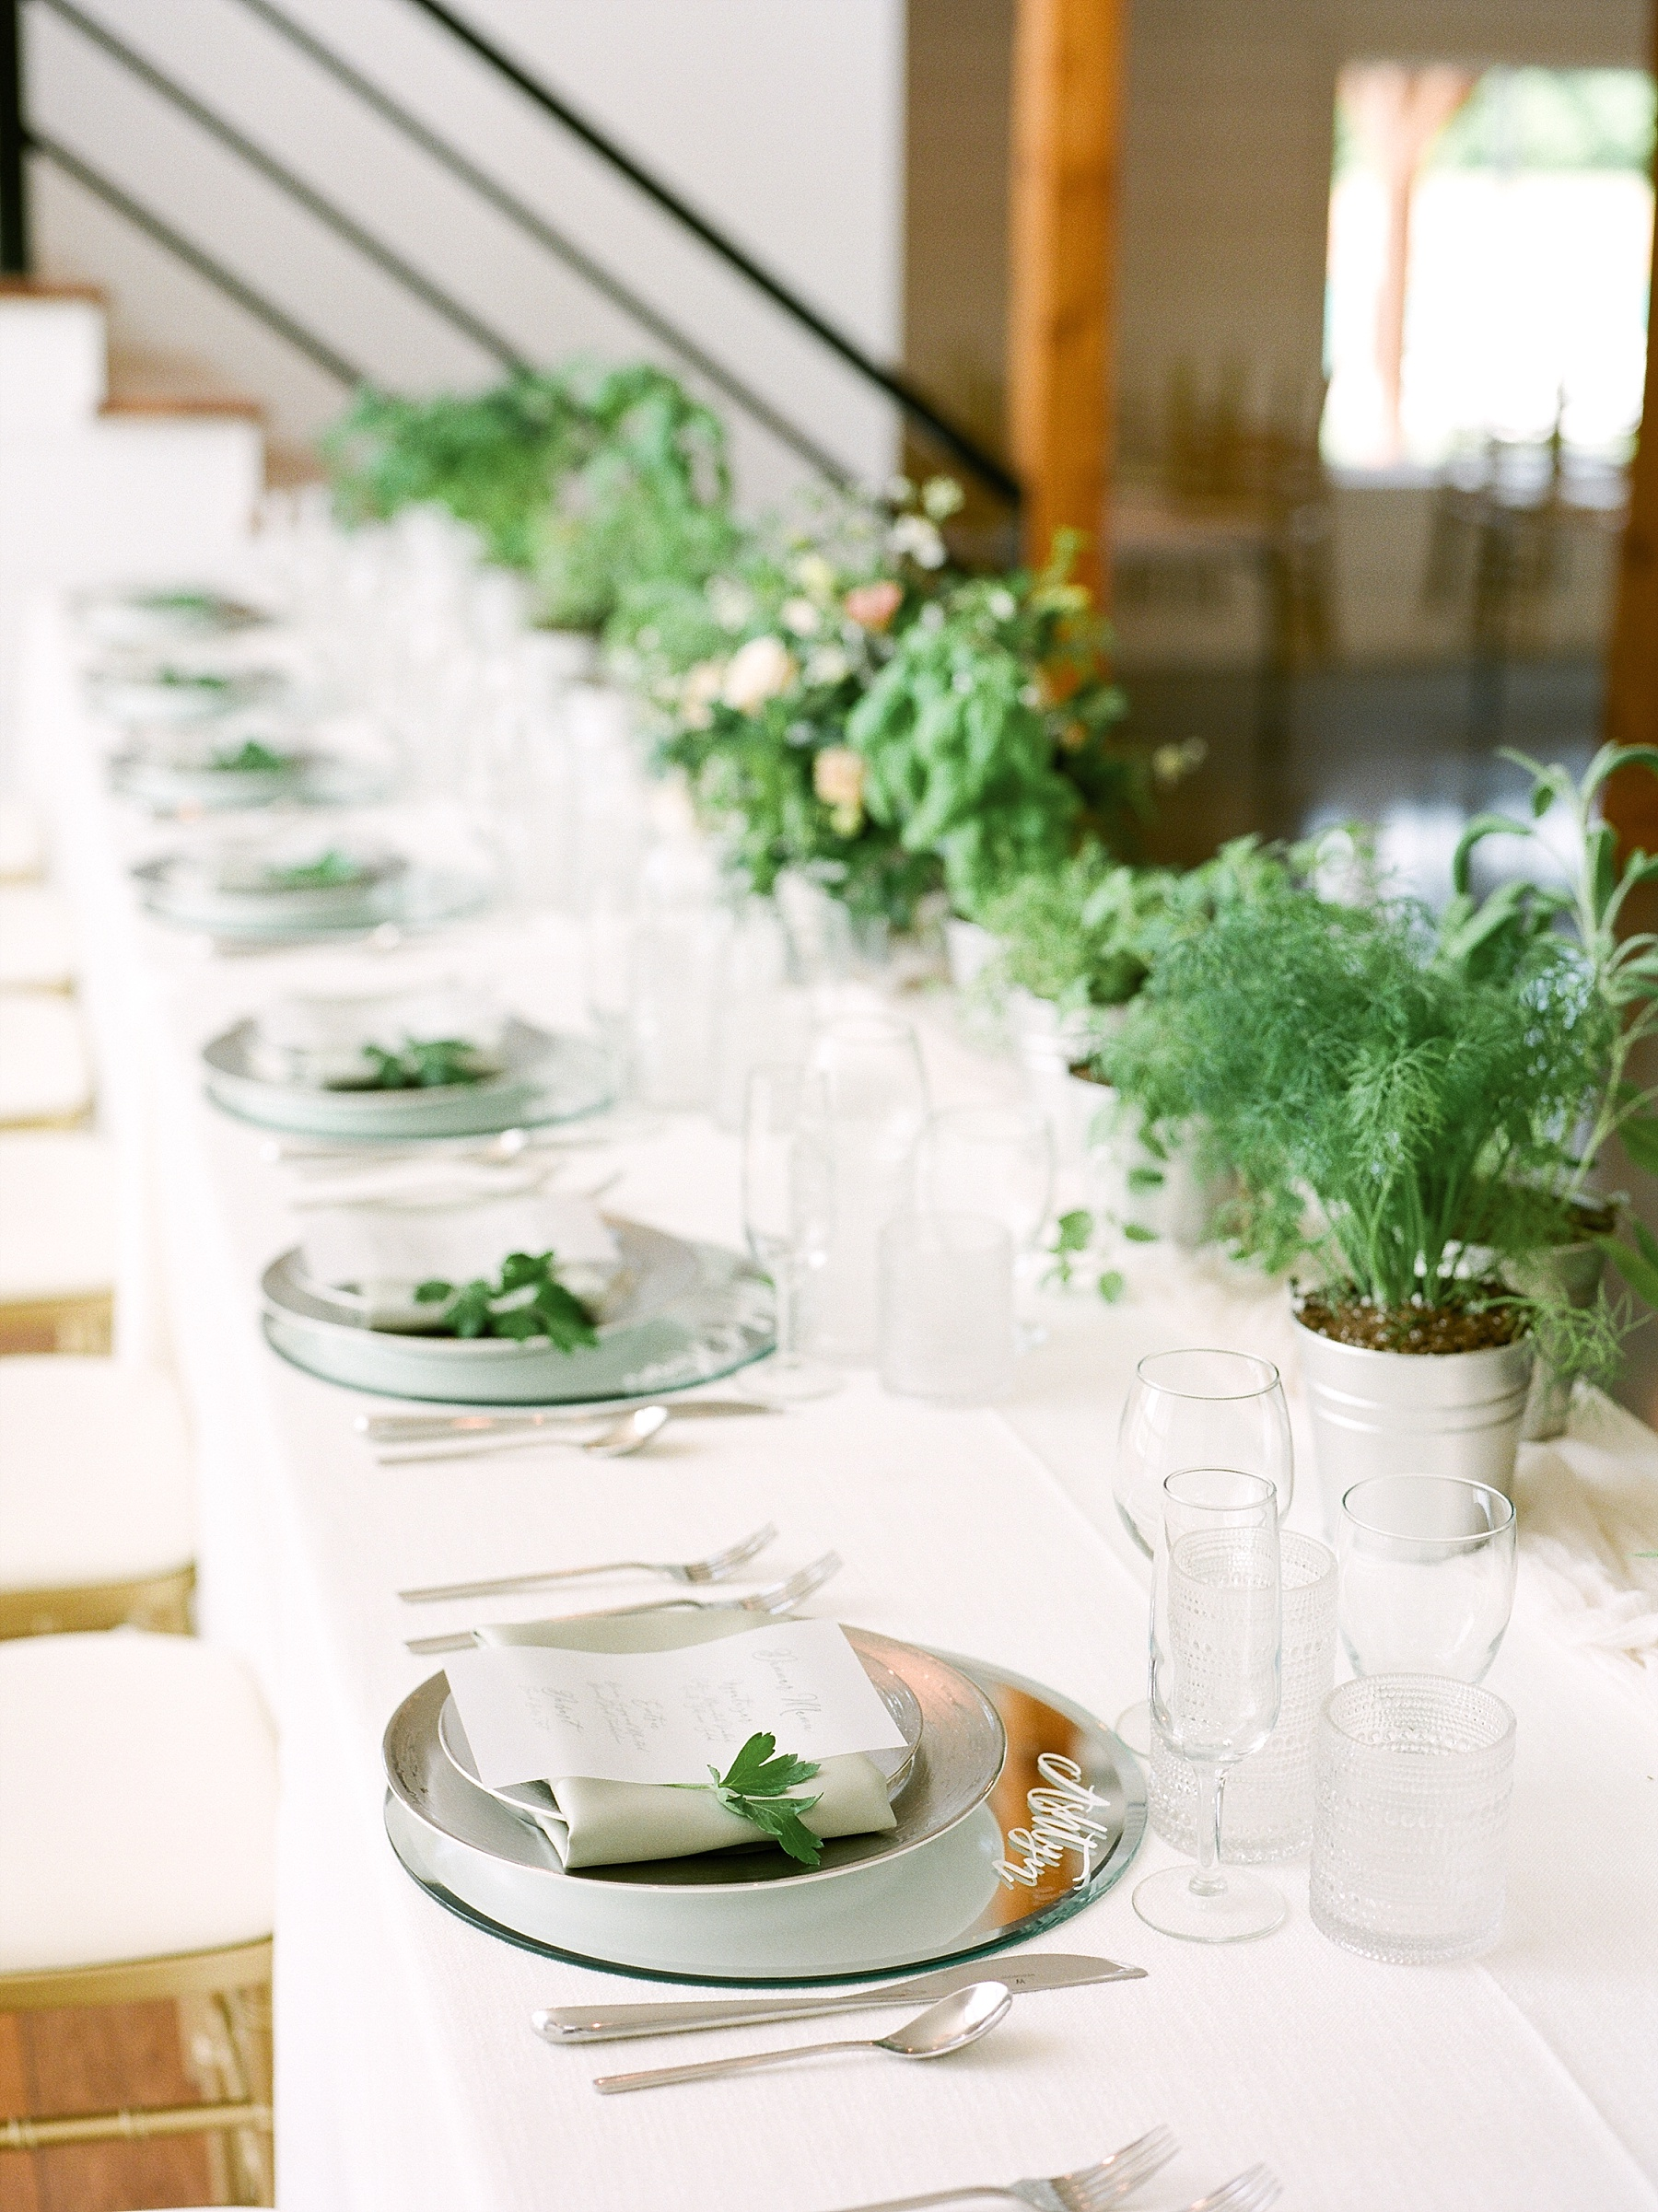 Textural Organic Wedding in All White Venue by Kelsi Kliethermes Wedding Photographer - Missouri, Midwest, and Destinations_0101.jpg